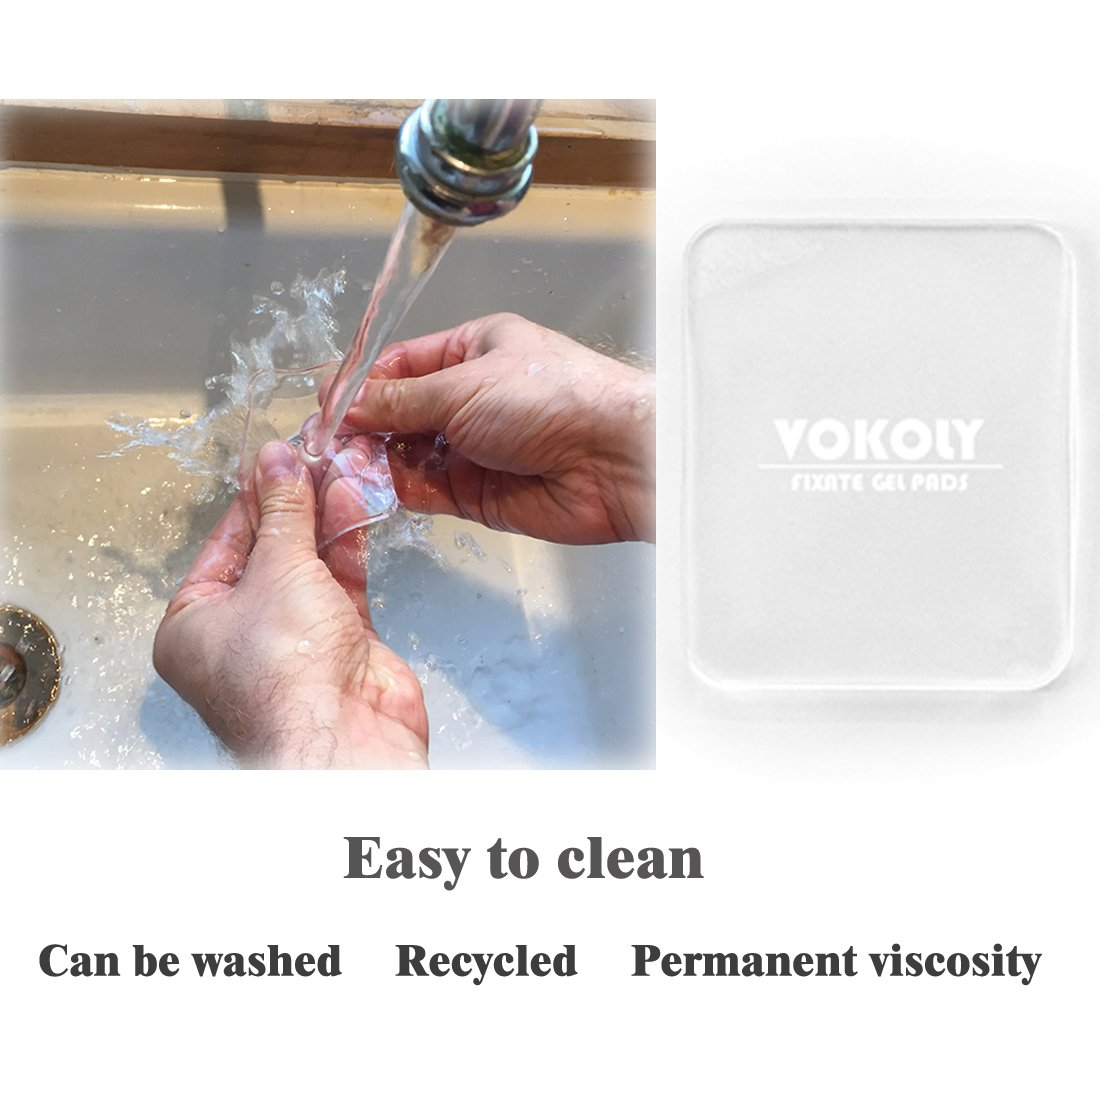 VOKOLY, Universal non-slip mats,Sticky Anti-Slip Gel Pads,Stick to Anywhere&Holds Anything (8 PACK Clear) by VOKOLY (Image #6)